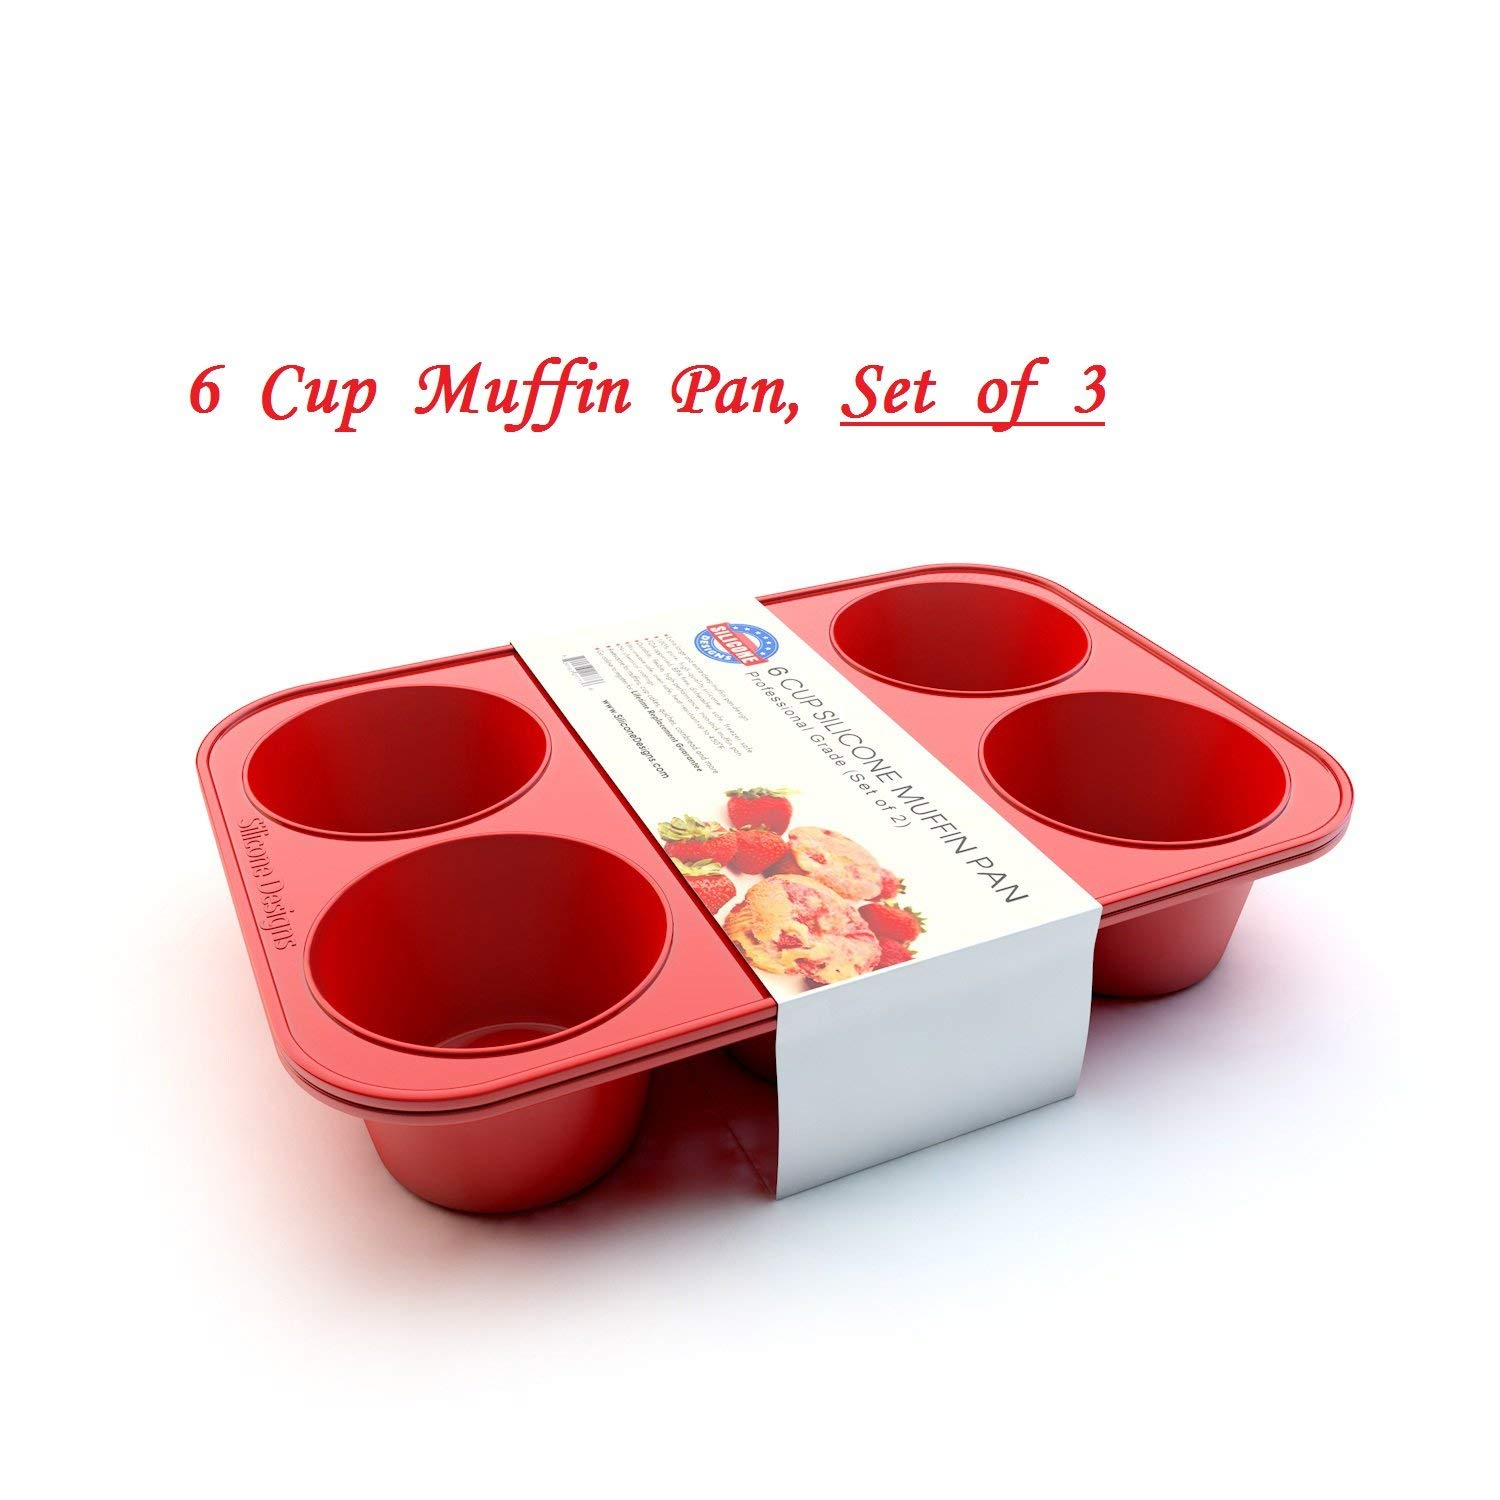 Silicone Texas Muffin Pans and Thanksgiving Cupcake Maker (3, 6 Cup) by Silicone Designs (Image #4)